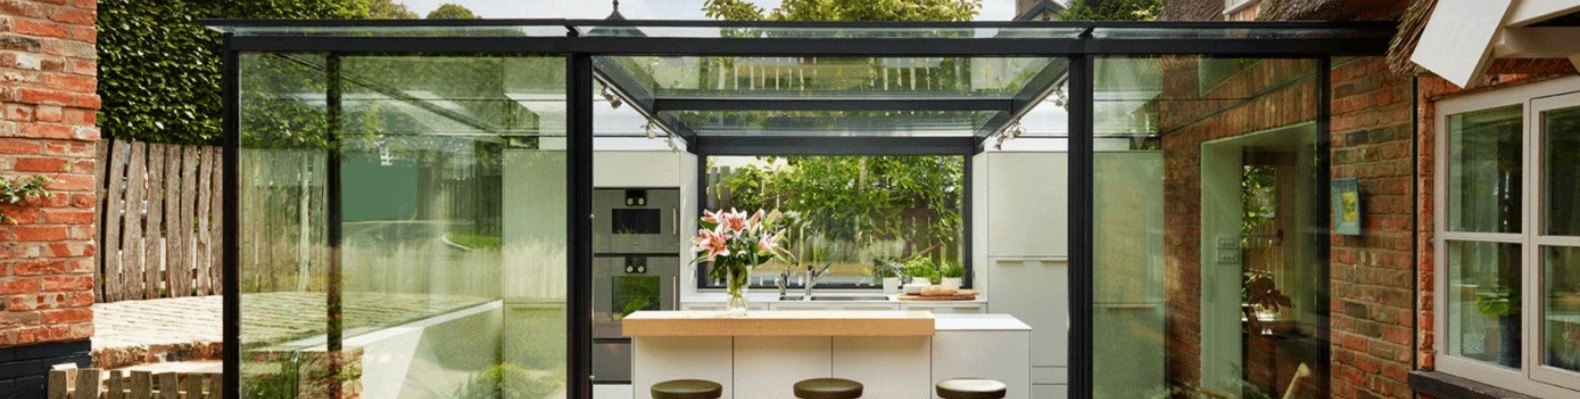 18th Century Thatched Roof English Cottage Renovated With Glass Enclosed Kitchen  Extension | Inhabitat   Green Design, Innovation, Architecture, ...